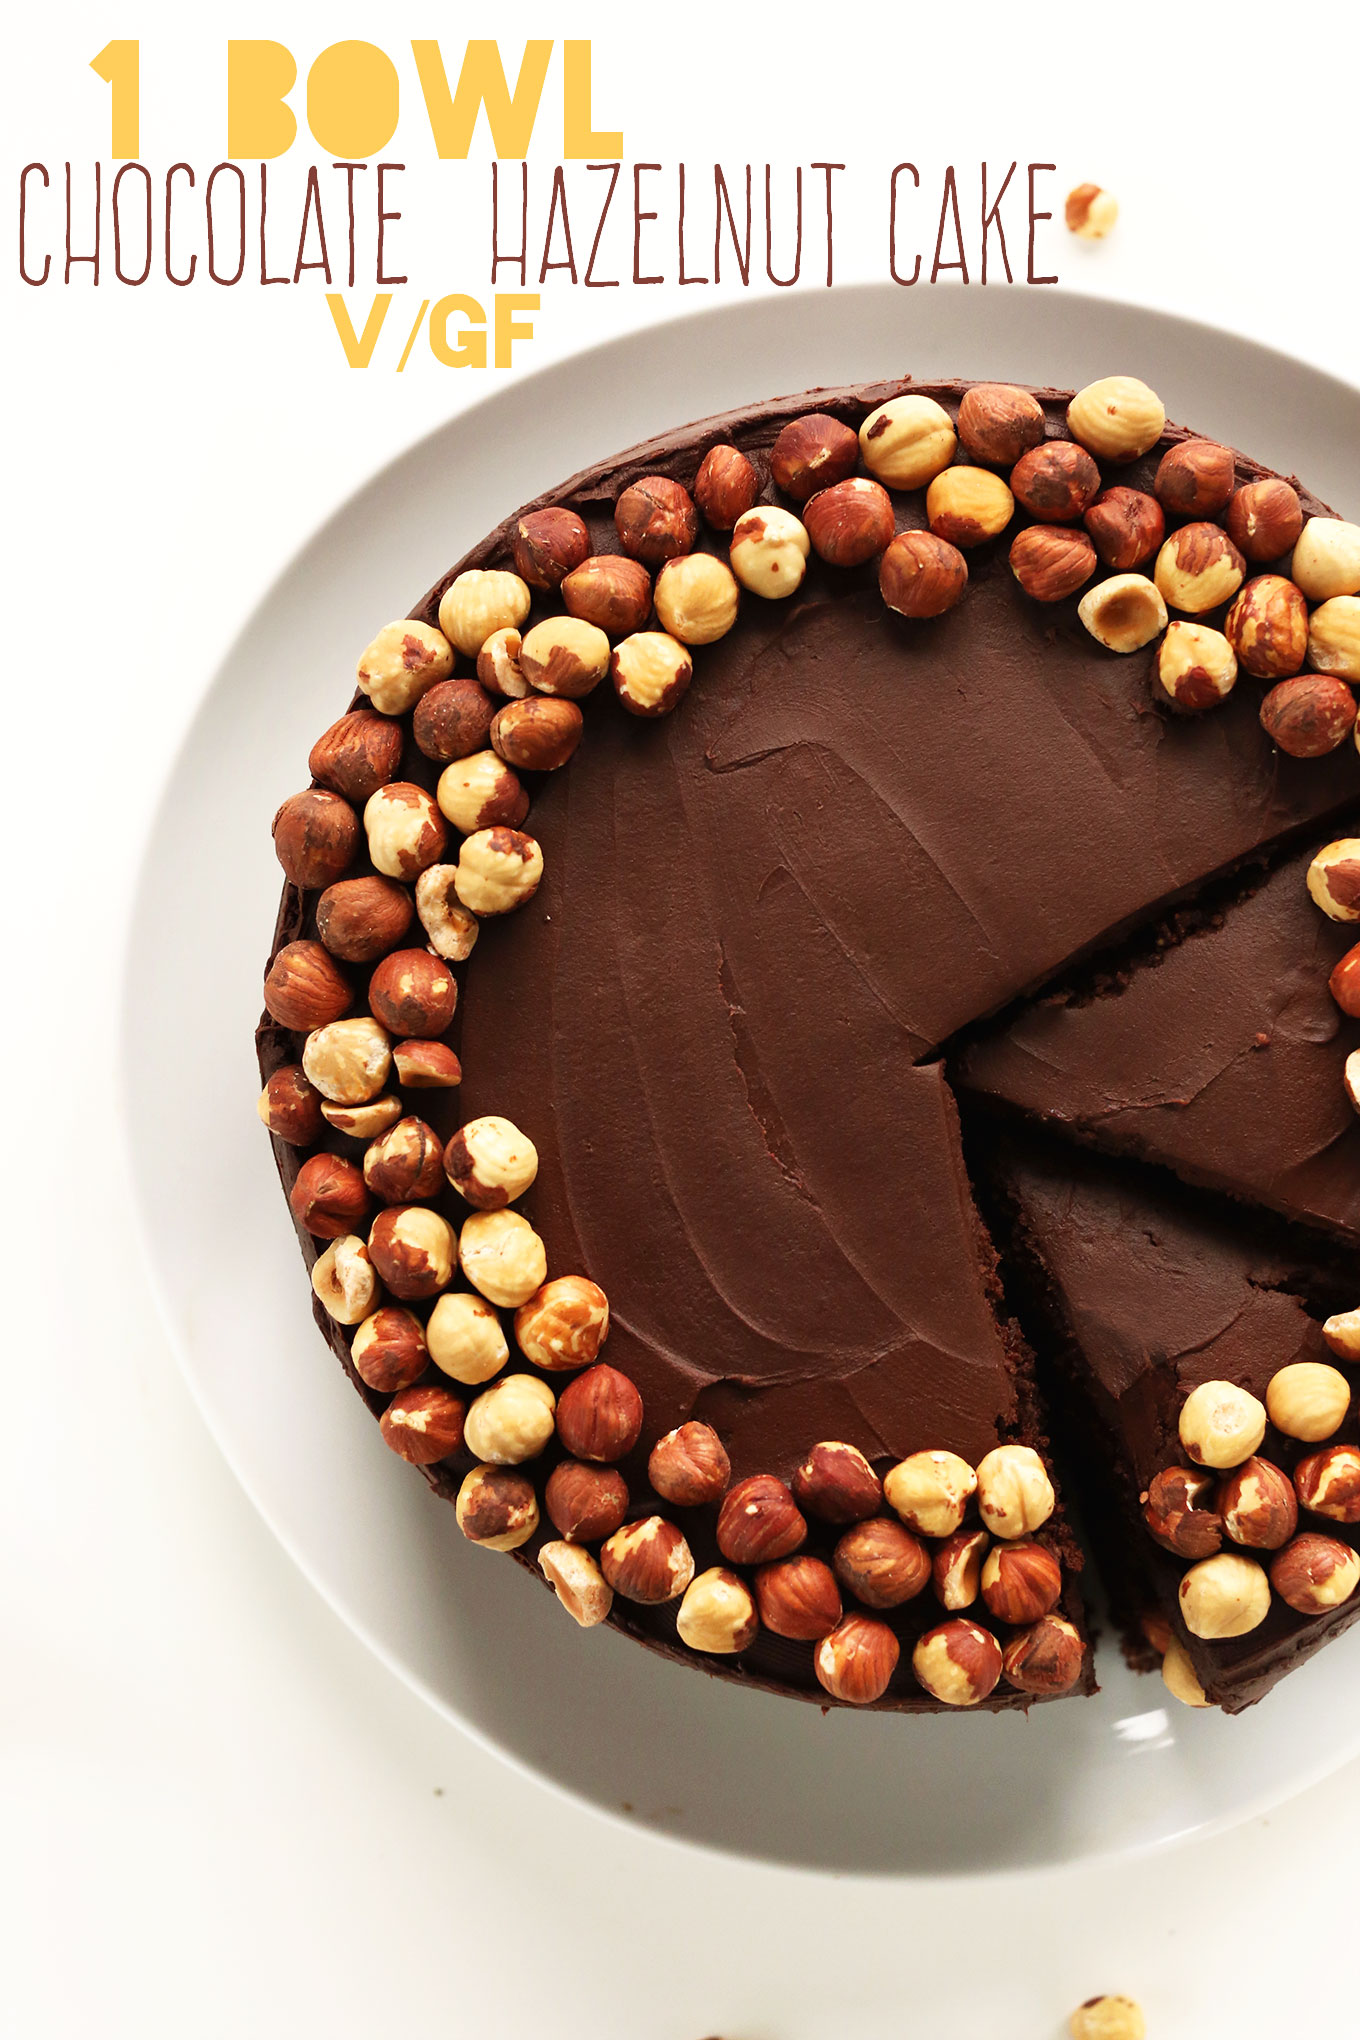 Rich and fudgy Chocolate Hazelnut Cake for a special gluten-free vegan dessert